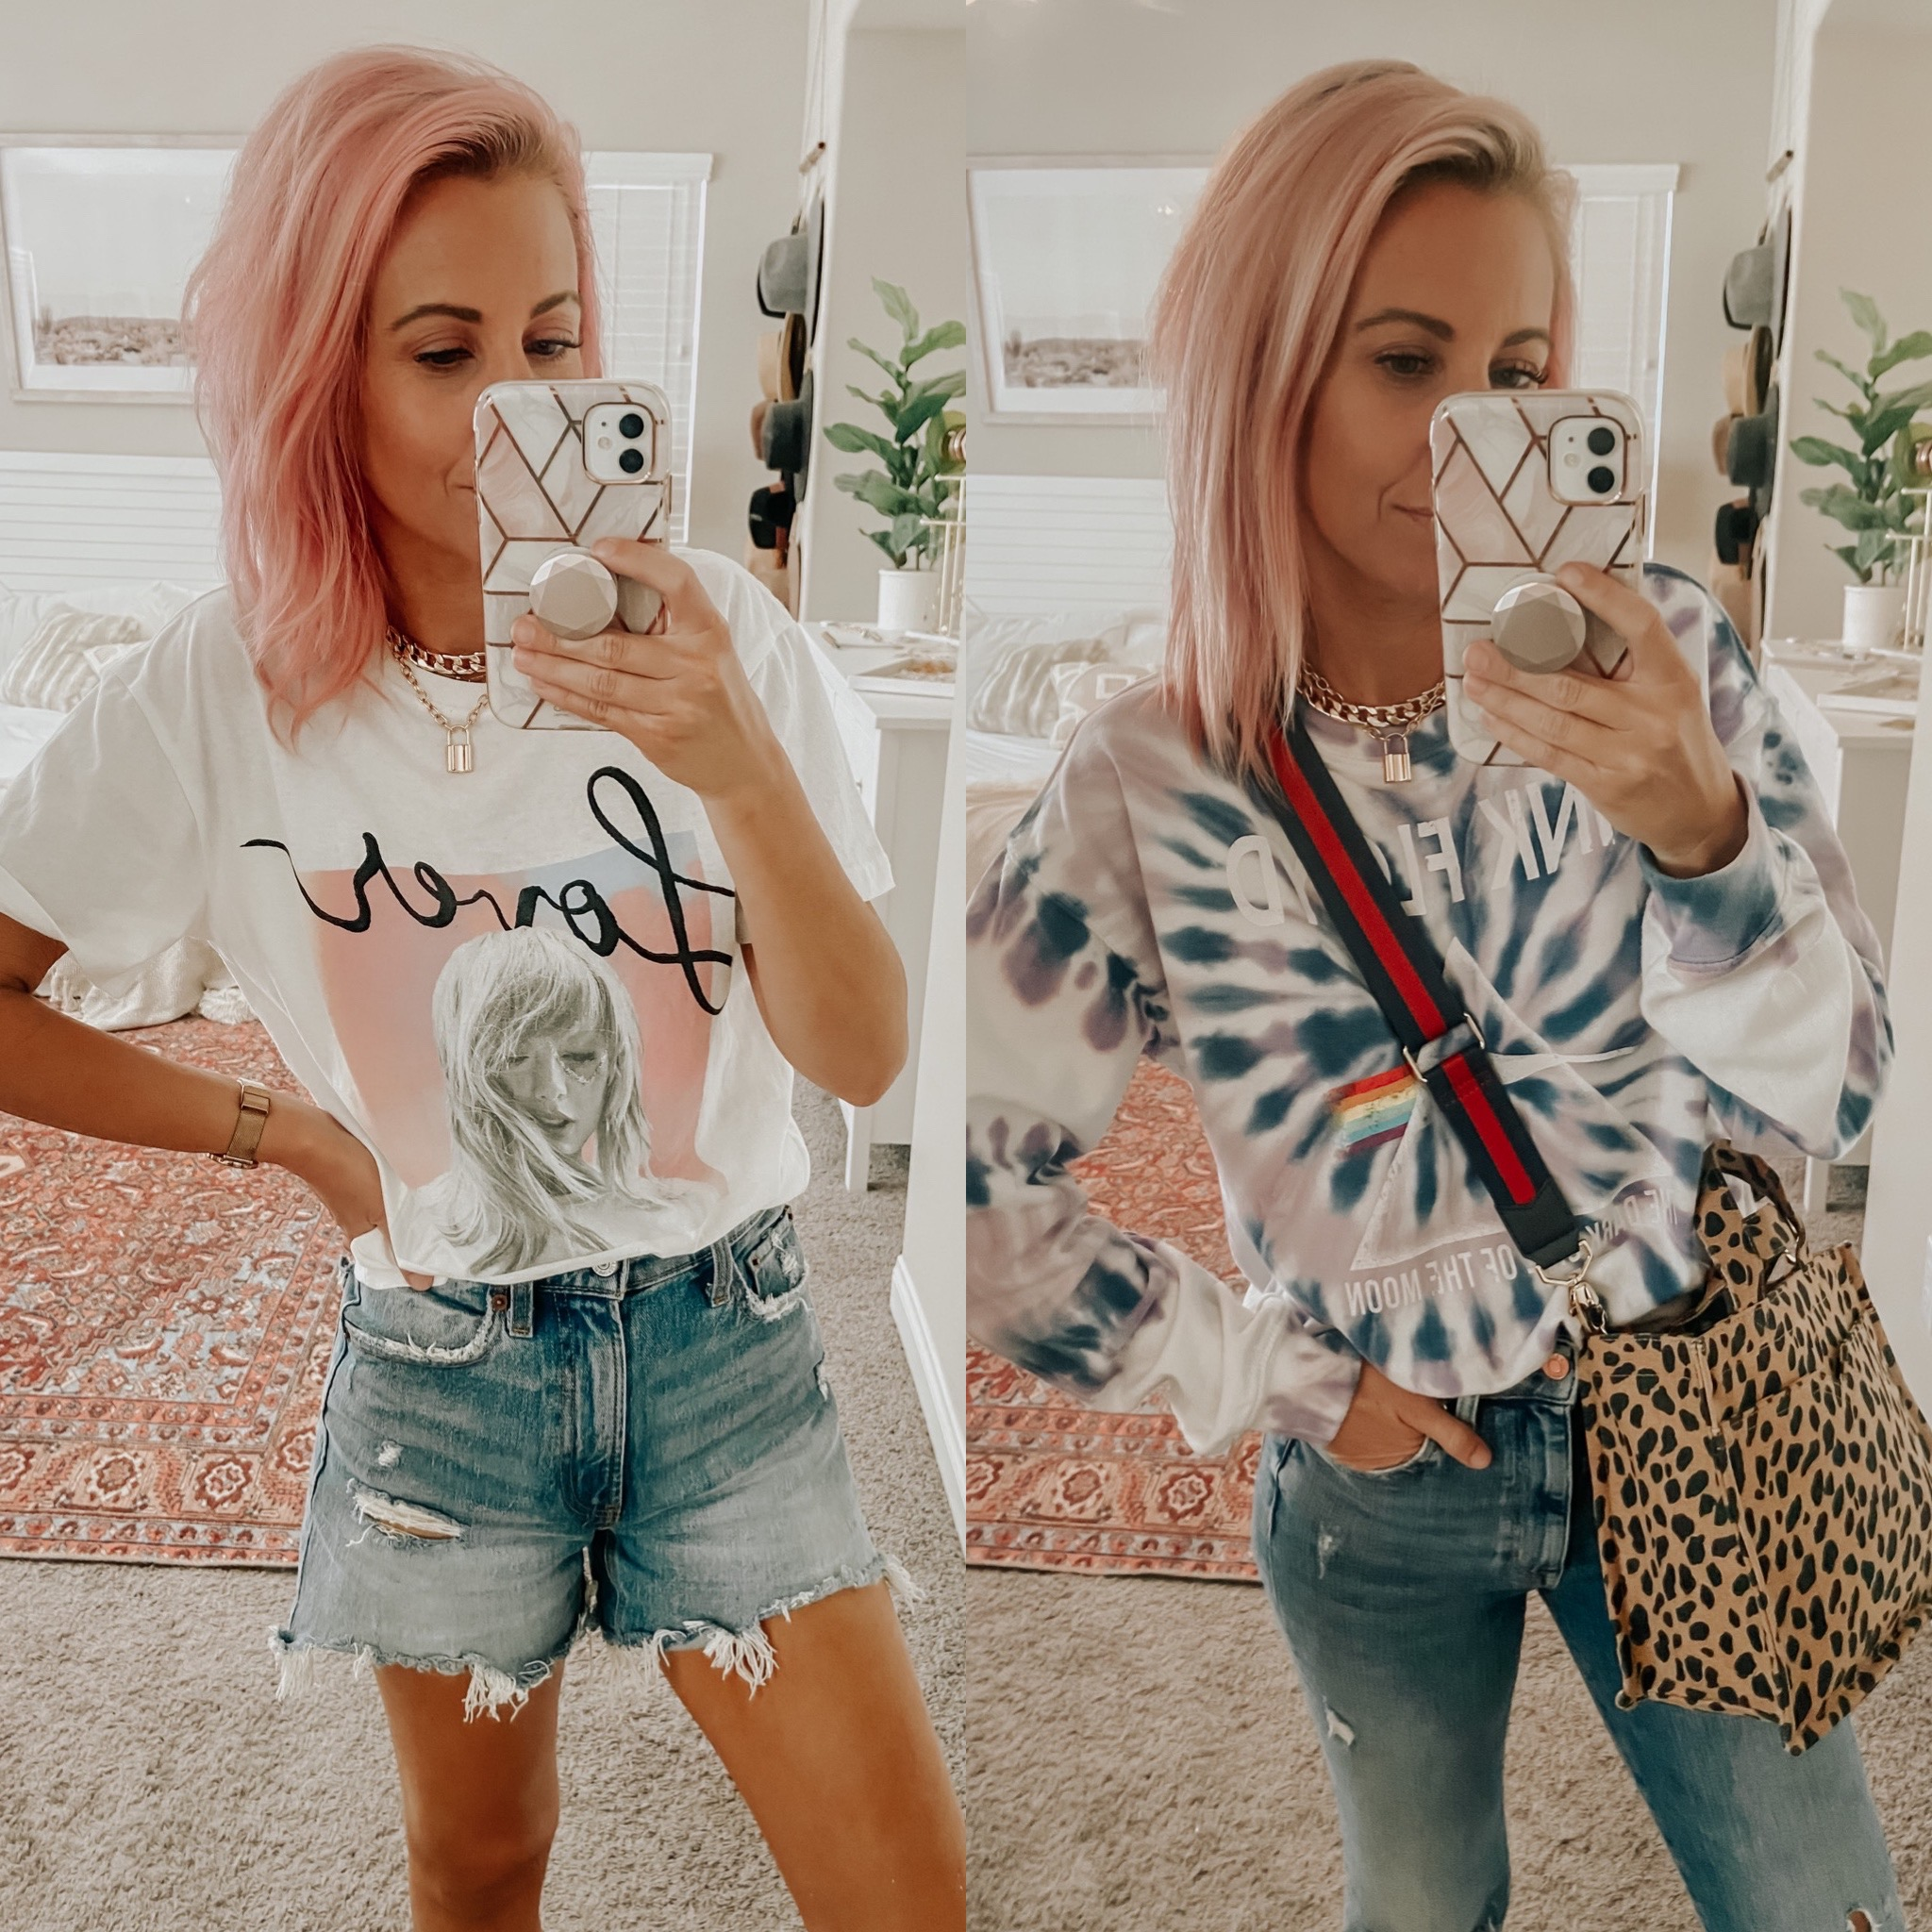 PINK HAIR DON'T CARE- WHAT I LEARNED FROM COLORING MY HAIR PINK- Jaclyn De Leon Style- Sharing all the details on what I used and what worked and didn't work with coloring my hair. Tips + tricks included